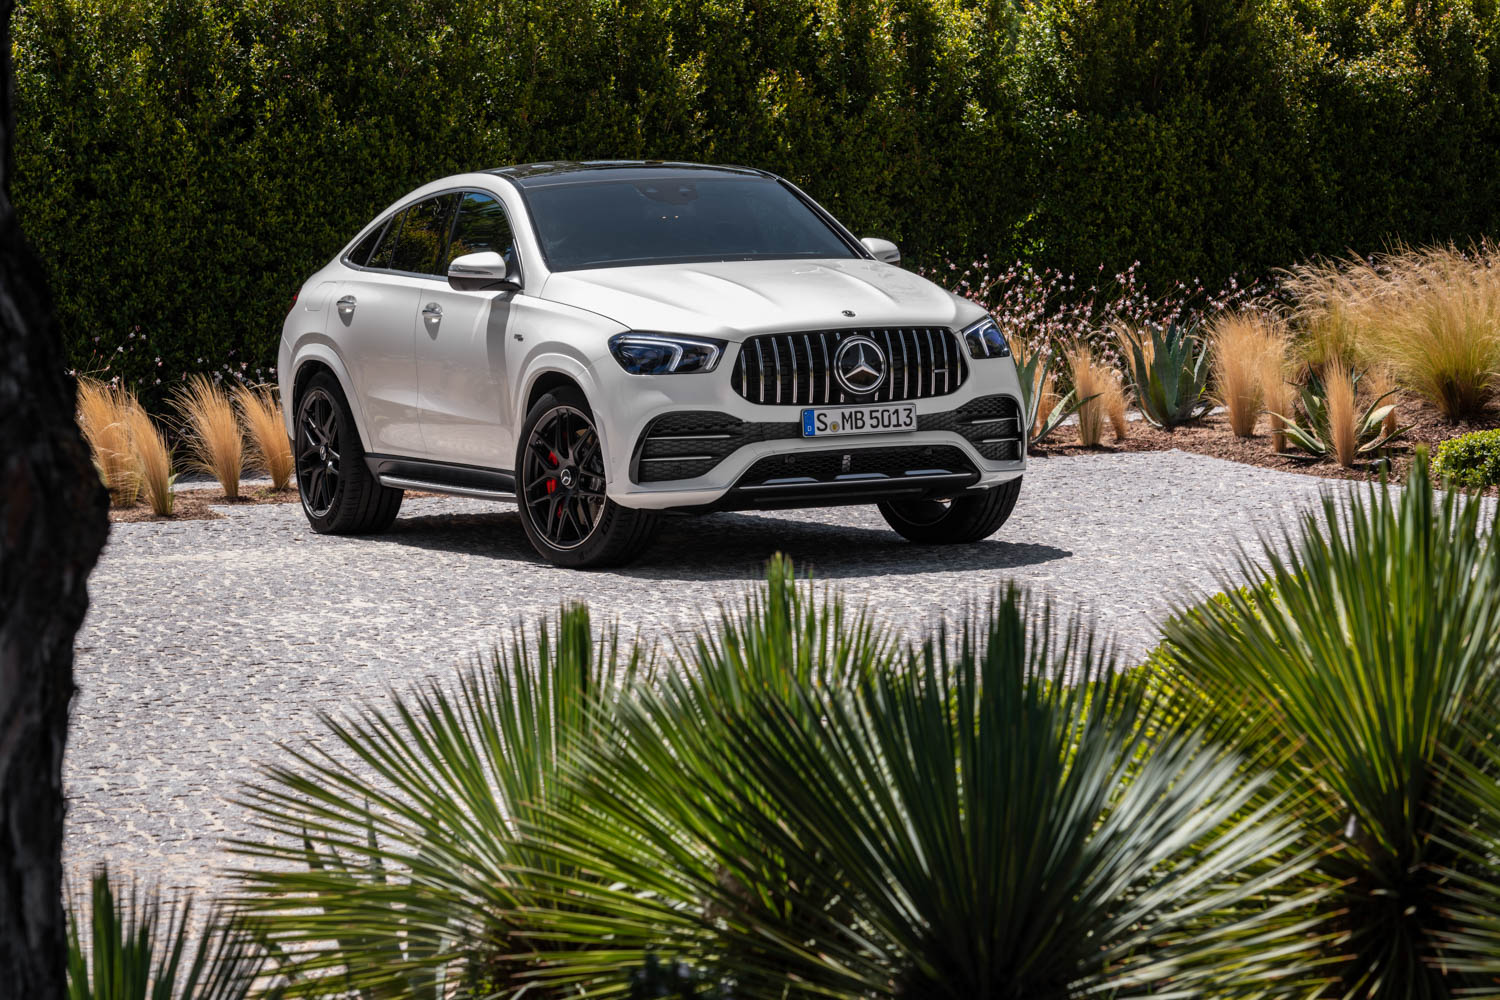 2021 Mercedes-AMG GLE 53 Coupe front 3/4